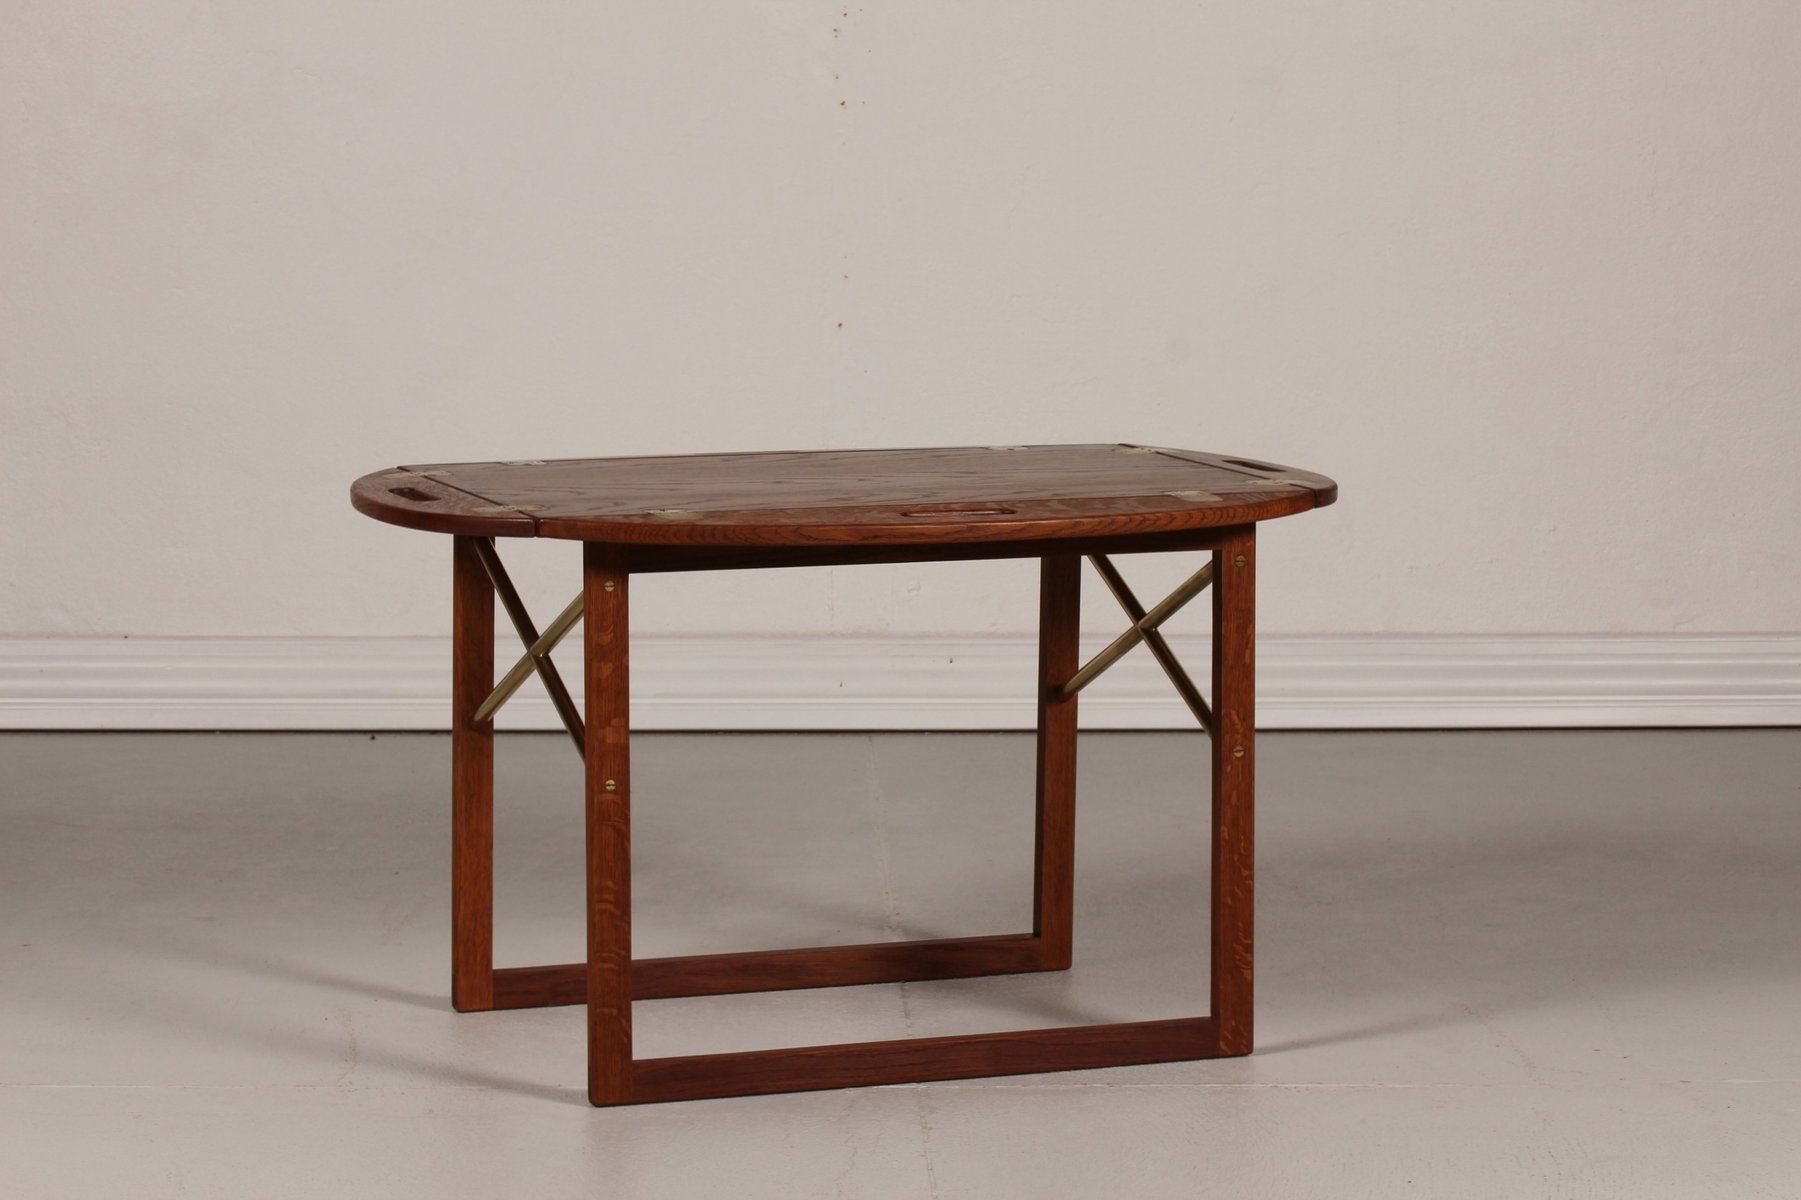 Danish Oak Tray Coffee Table by Svend Langkilde 1960s for sale at